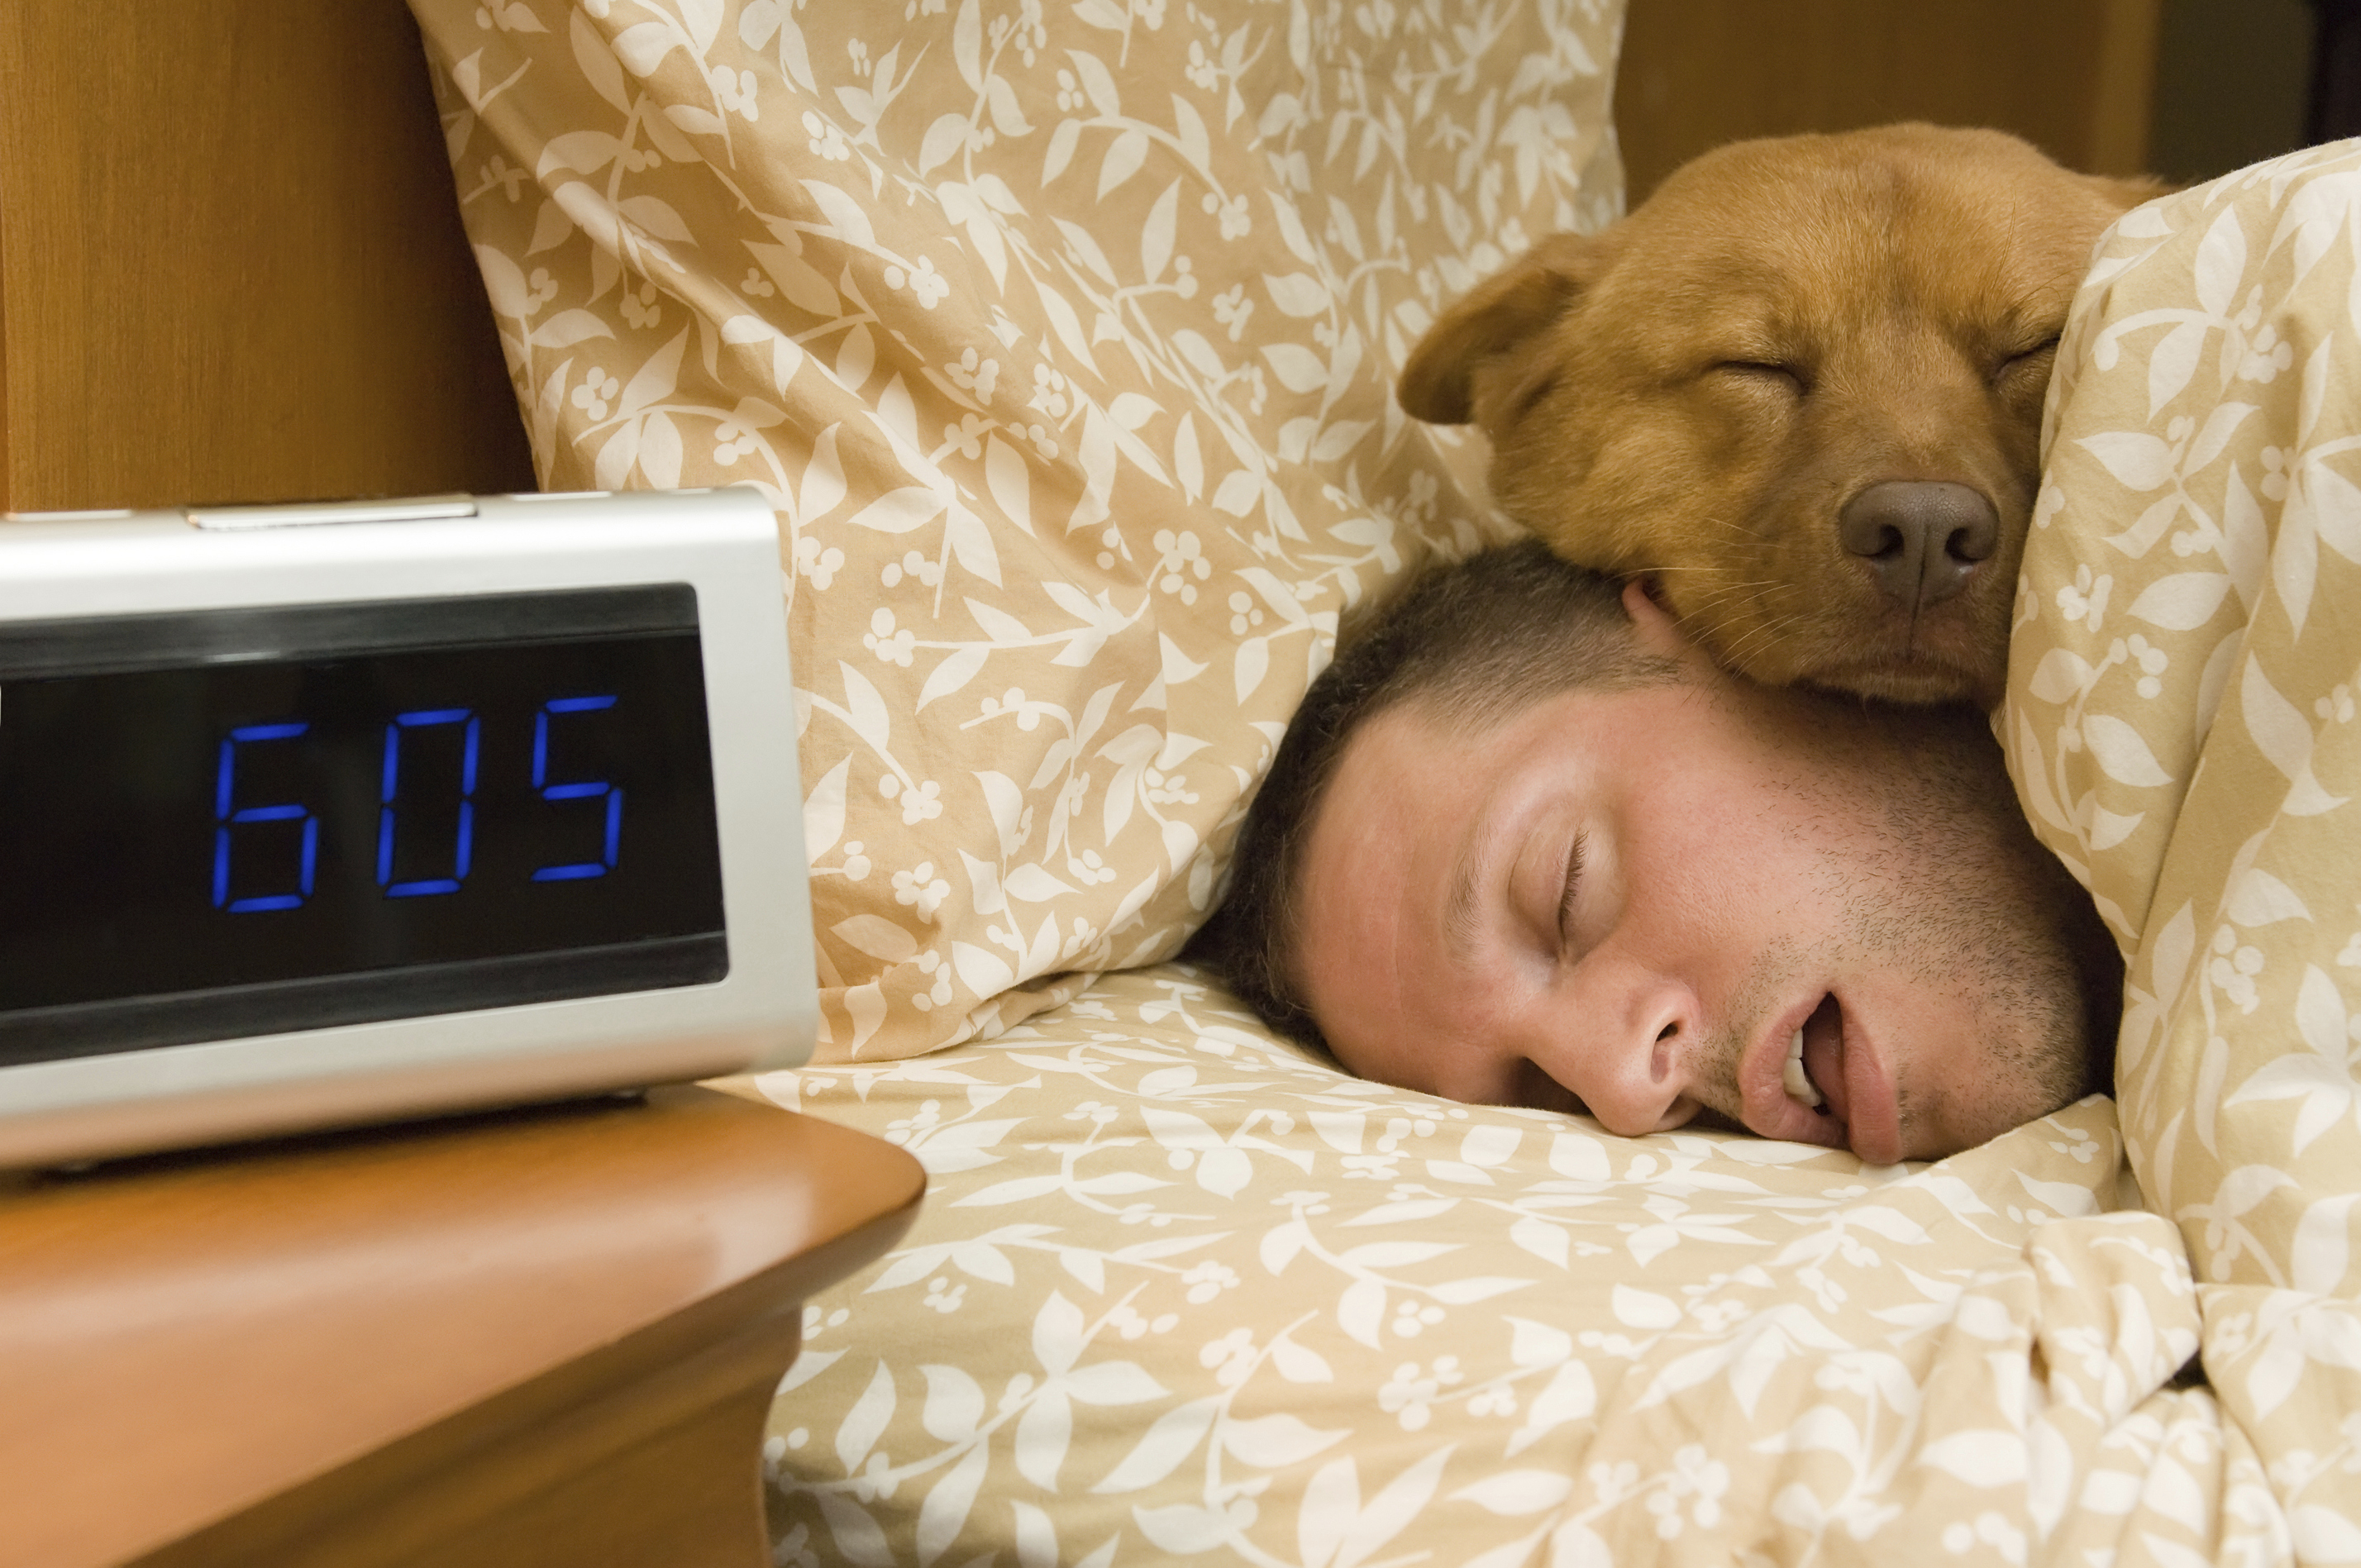 Pets may contribute to insomnia